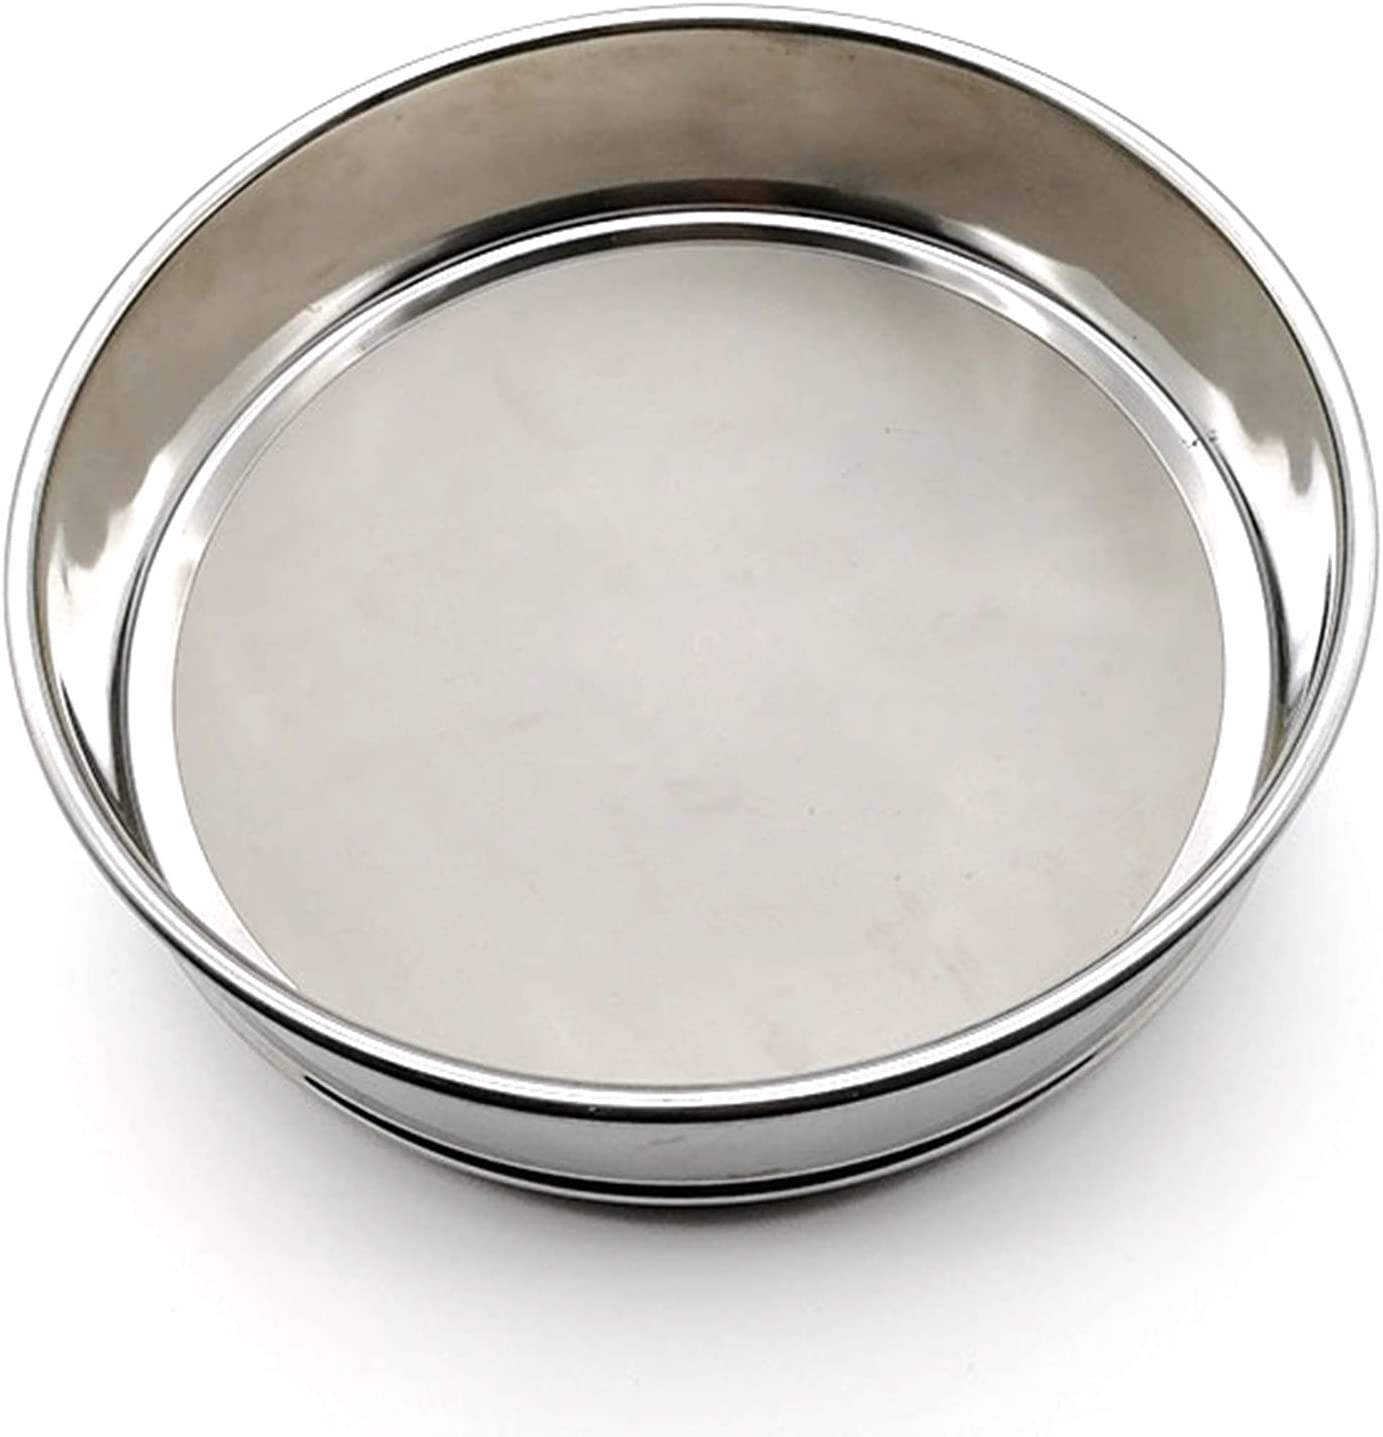 XFYJR Test Super intense SALE Sieve Popular product Φ200×50mm for Stainless Steel Indu